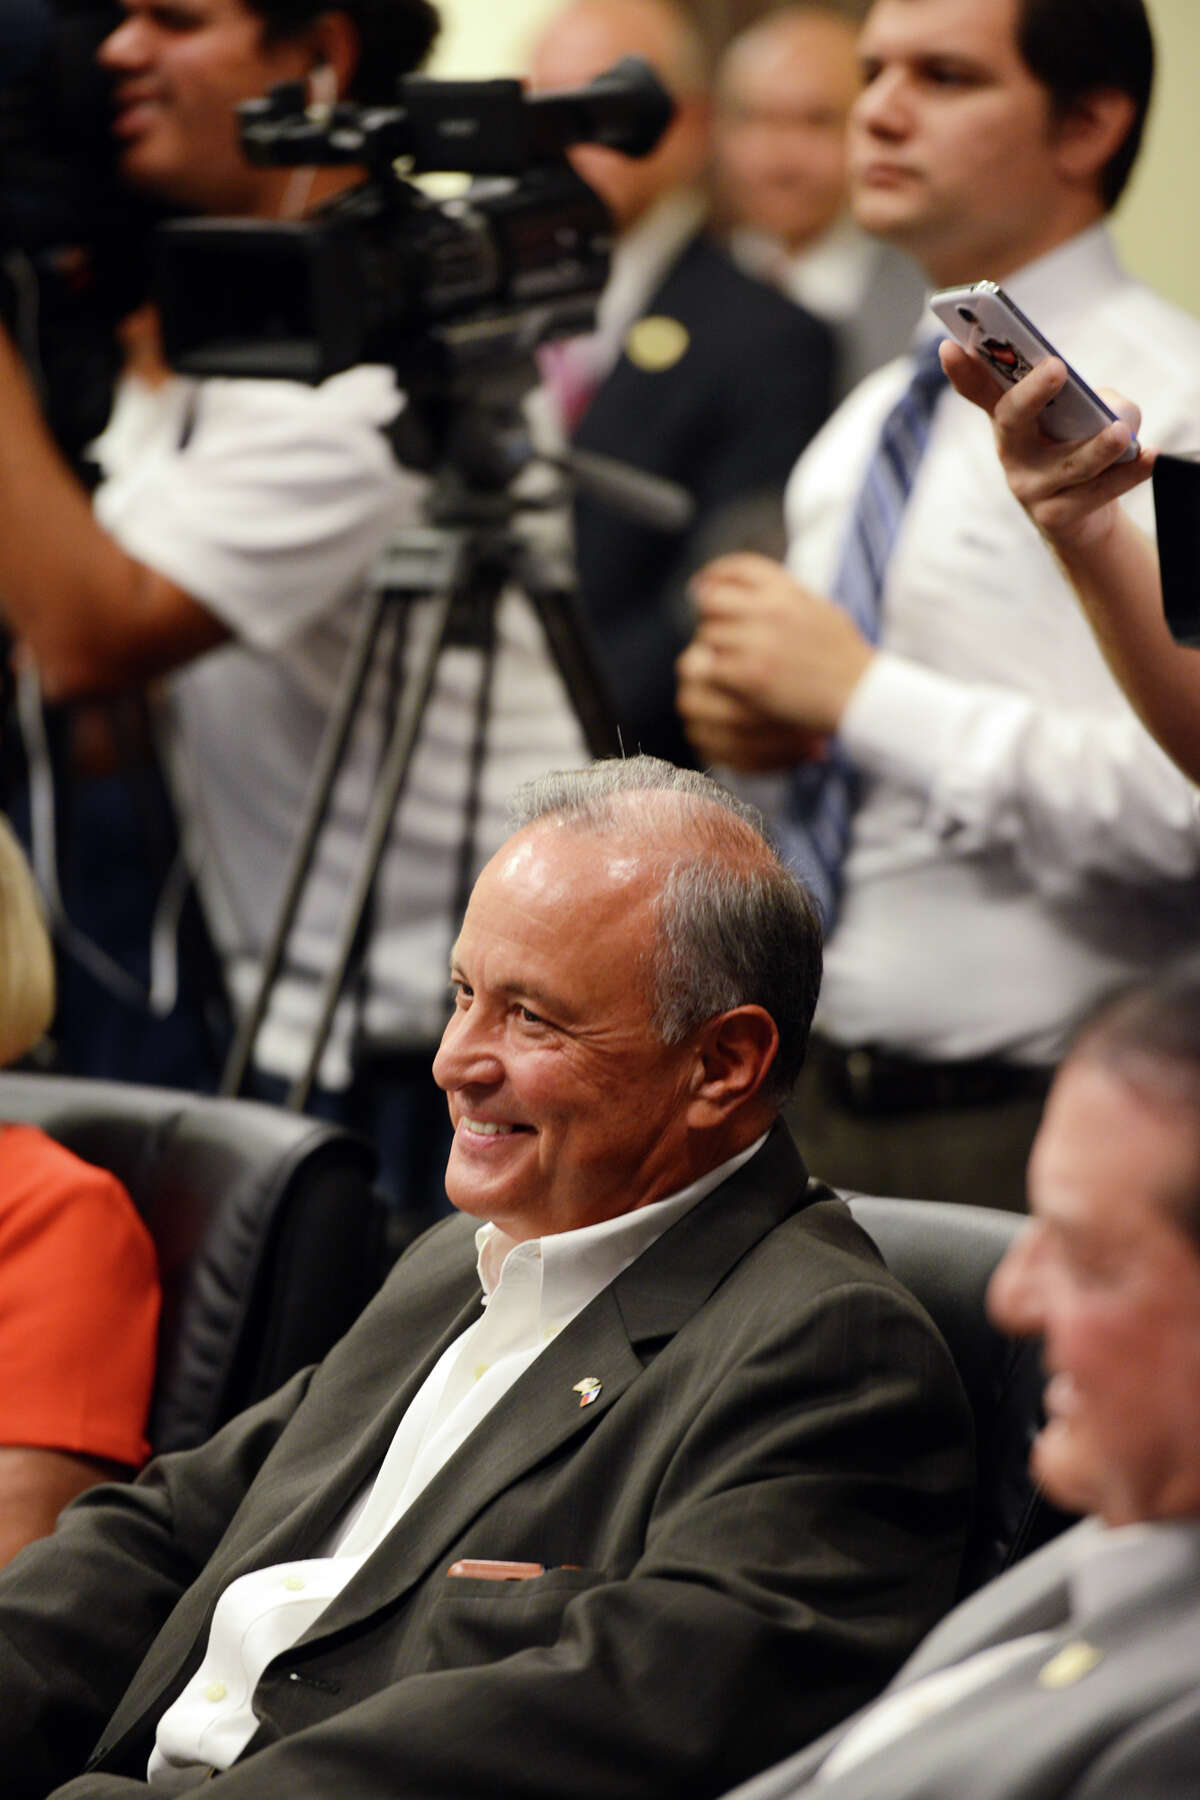 Cameron County Judge Carlos Cascos smiles after Governor-elect Gregg Abbott announced him as the new Texas secretary of state in Brownsville, Texas on Tuesday, Nov. 11, 2014. Cascos was re-elected county judge in the recent election. (AP Photo/The Brownsville Herald, Brad Doherty)